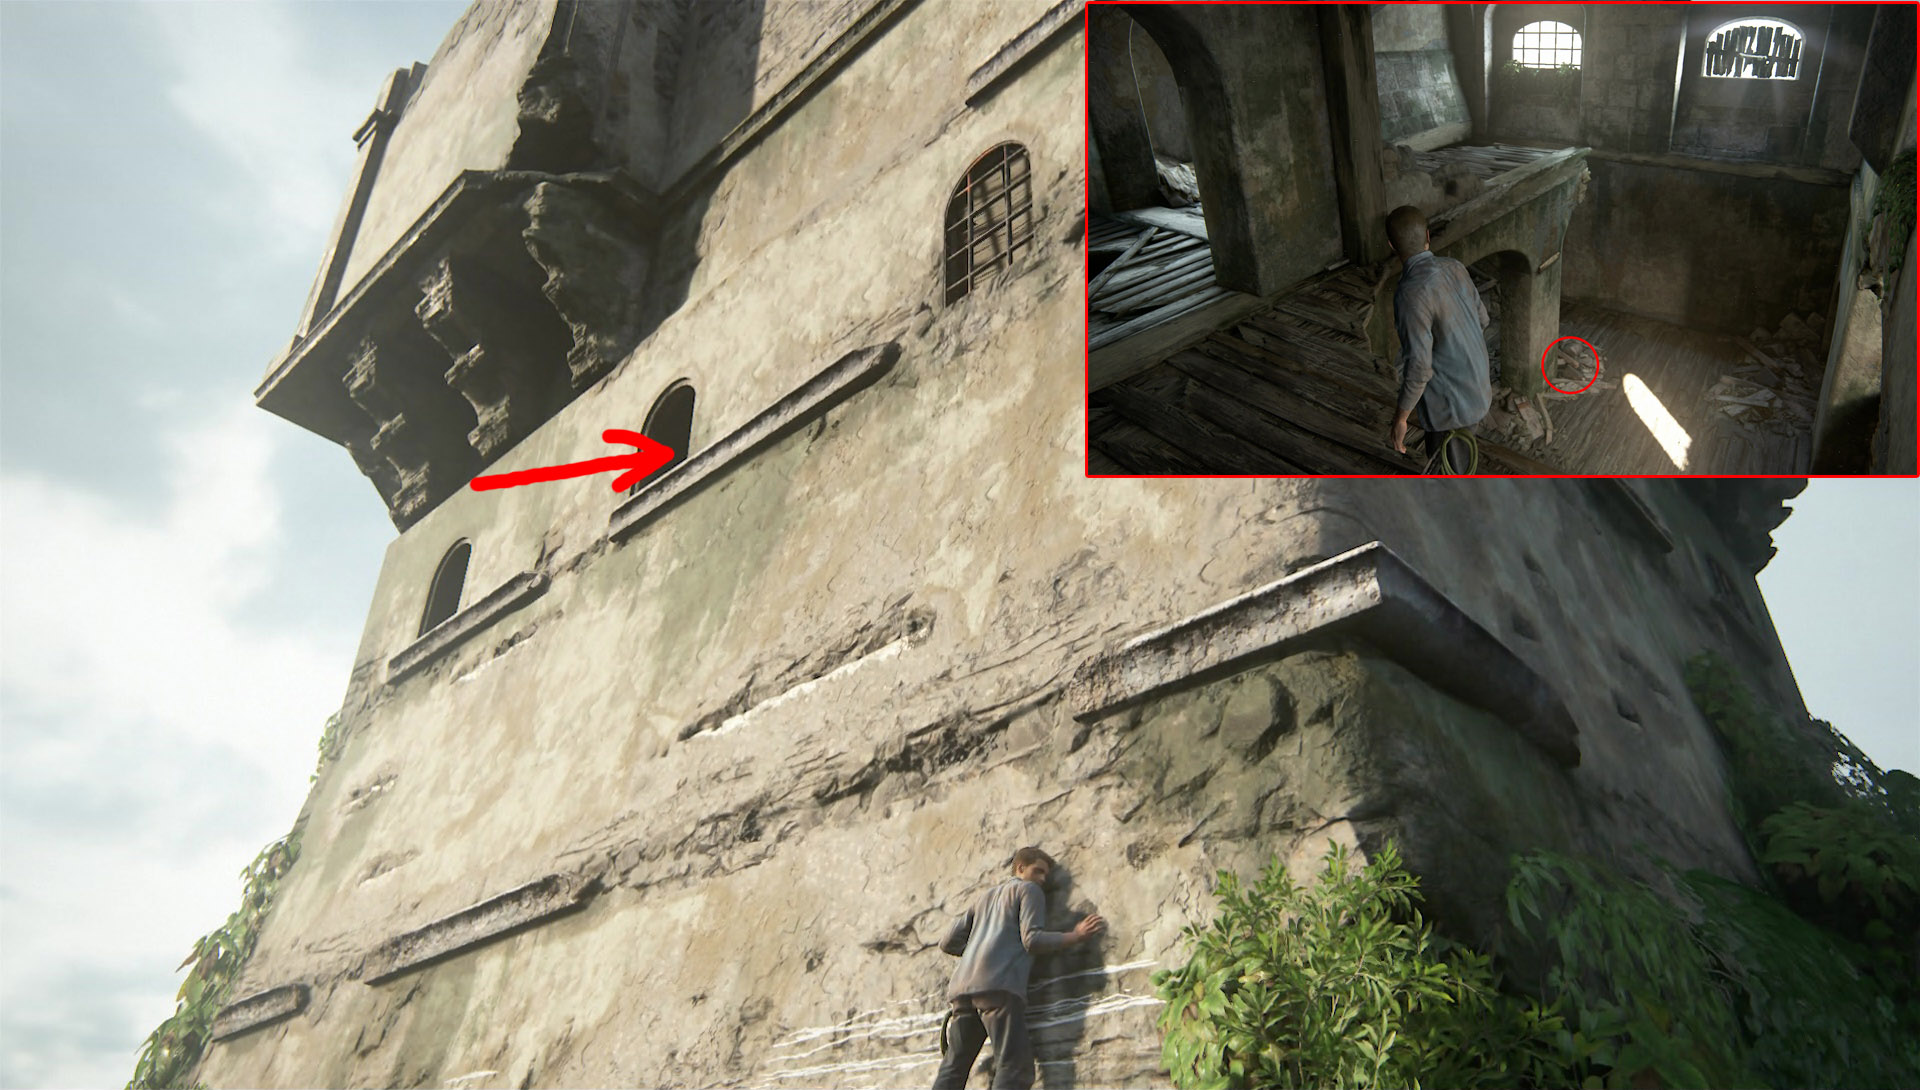 uncharted 4 collectible locations chapter 2